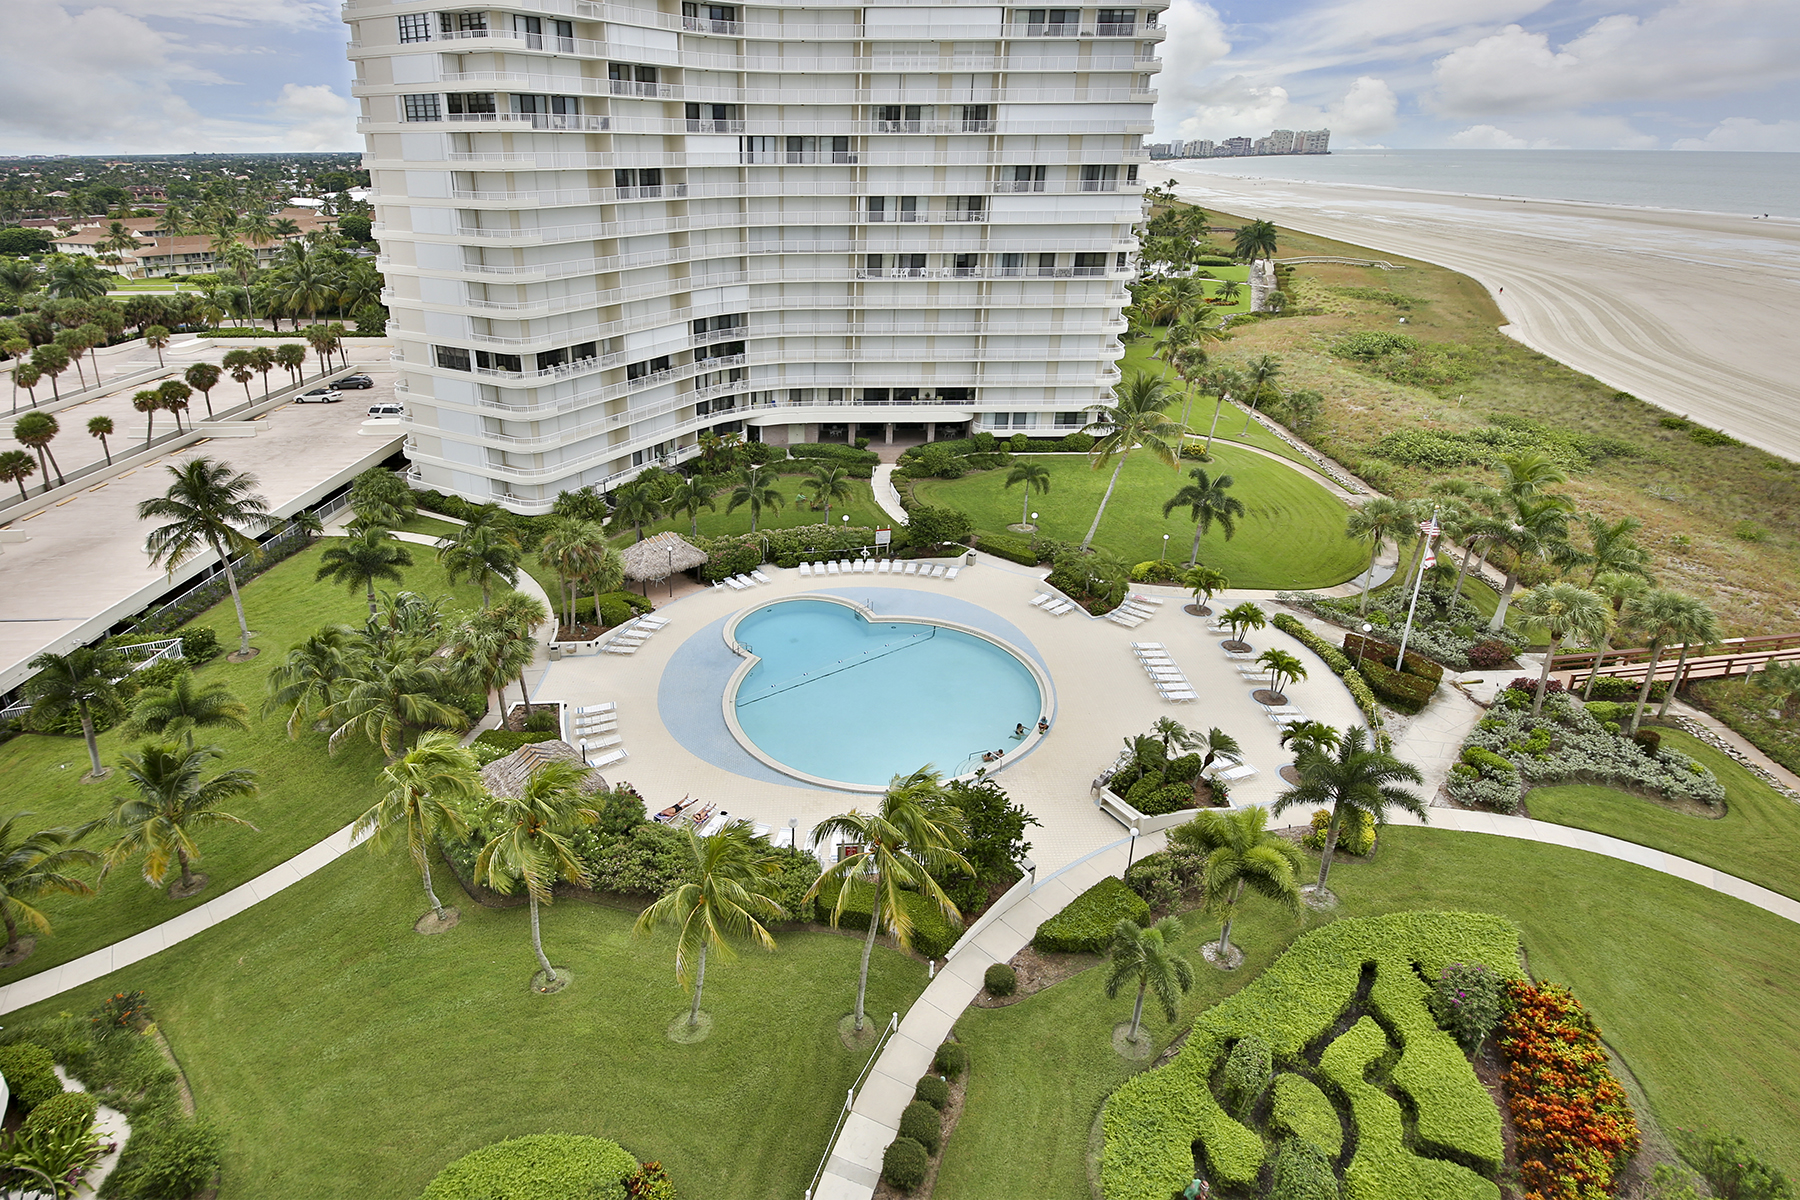 Condominium for Sale at MARCO ISLAND - SOUTH SEAS 320 Seaview Ct 1109 Marco Island, Florida, 34145 United States